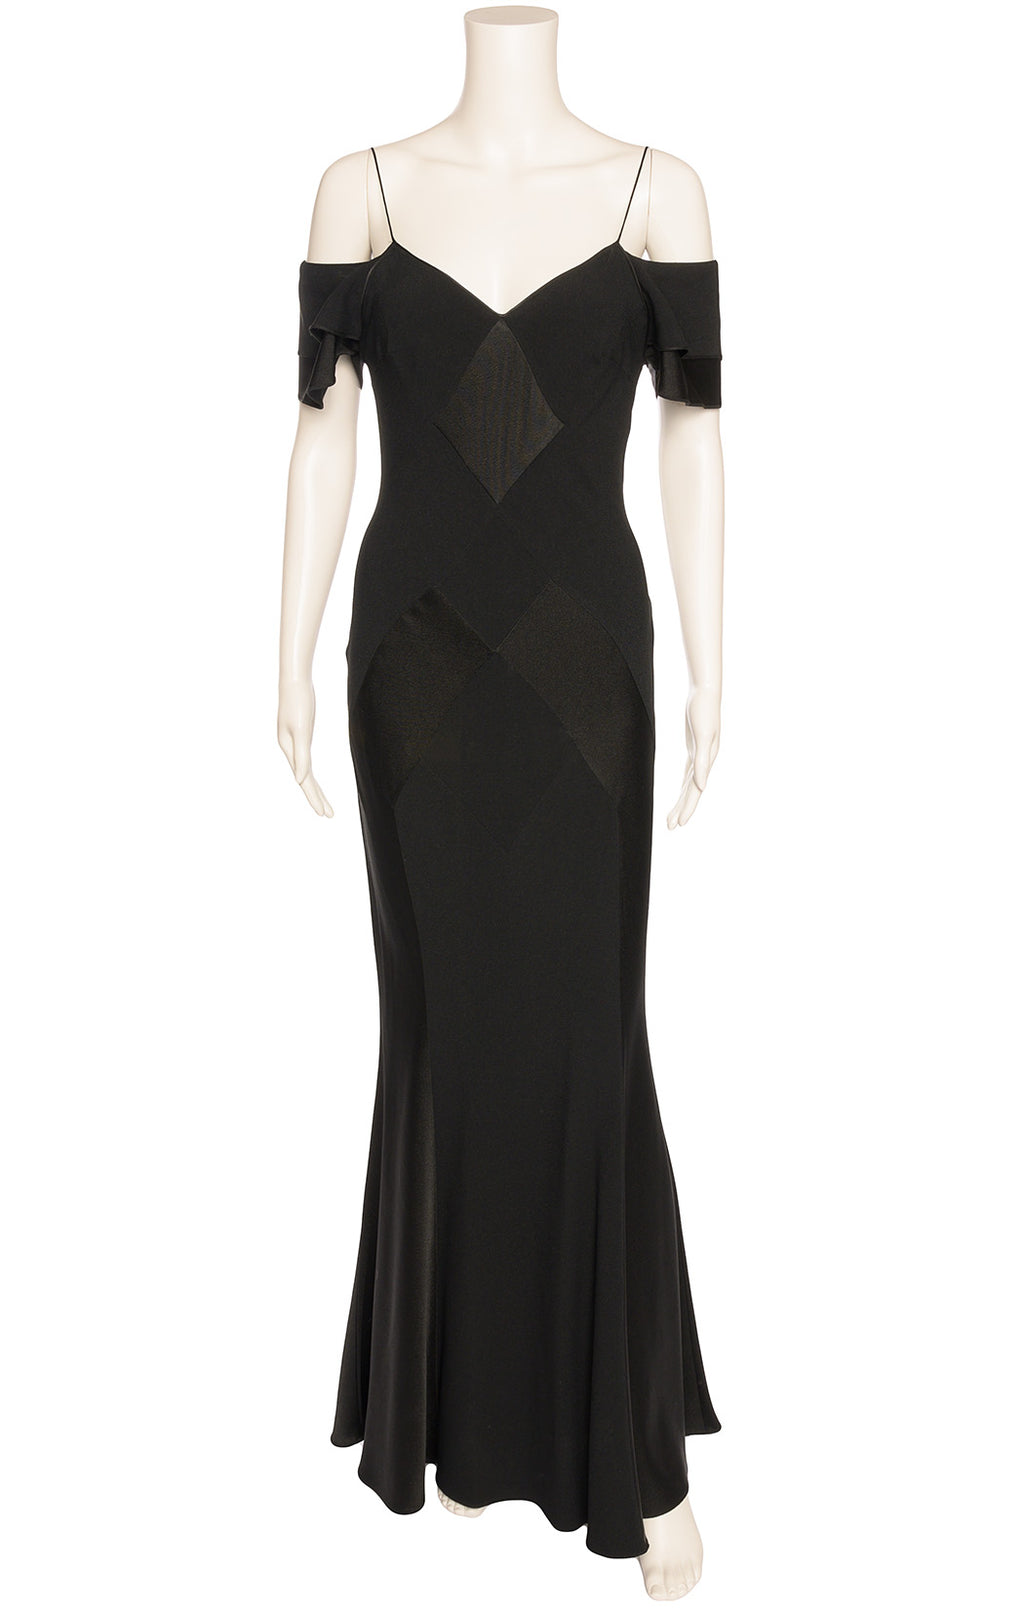 Front view of JOHN GALLIANO  Long dress Size: 10